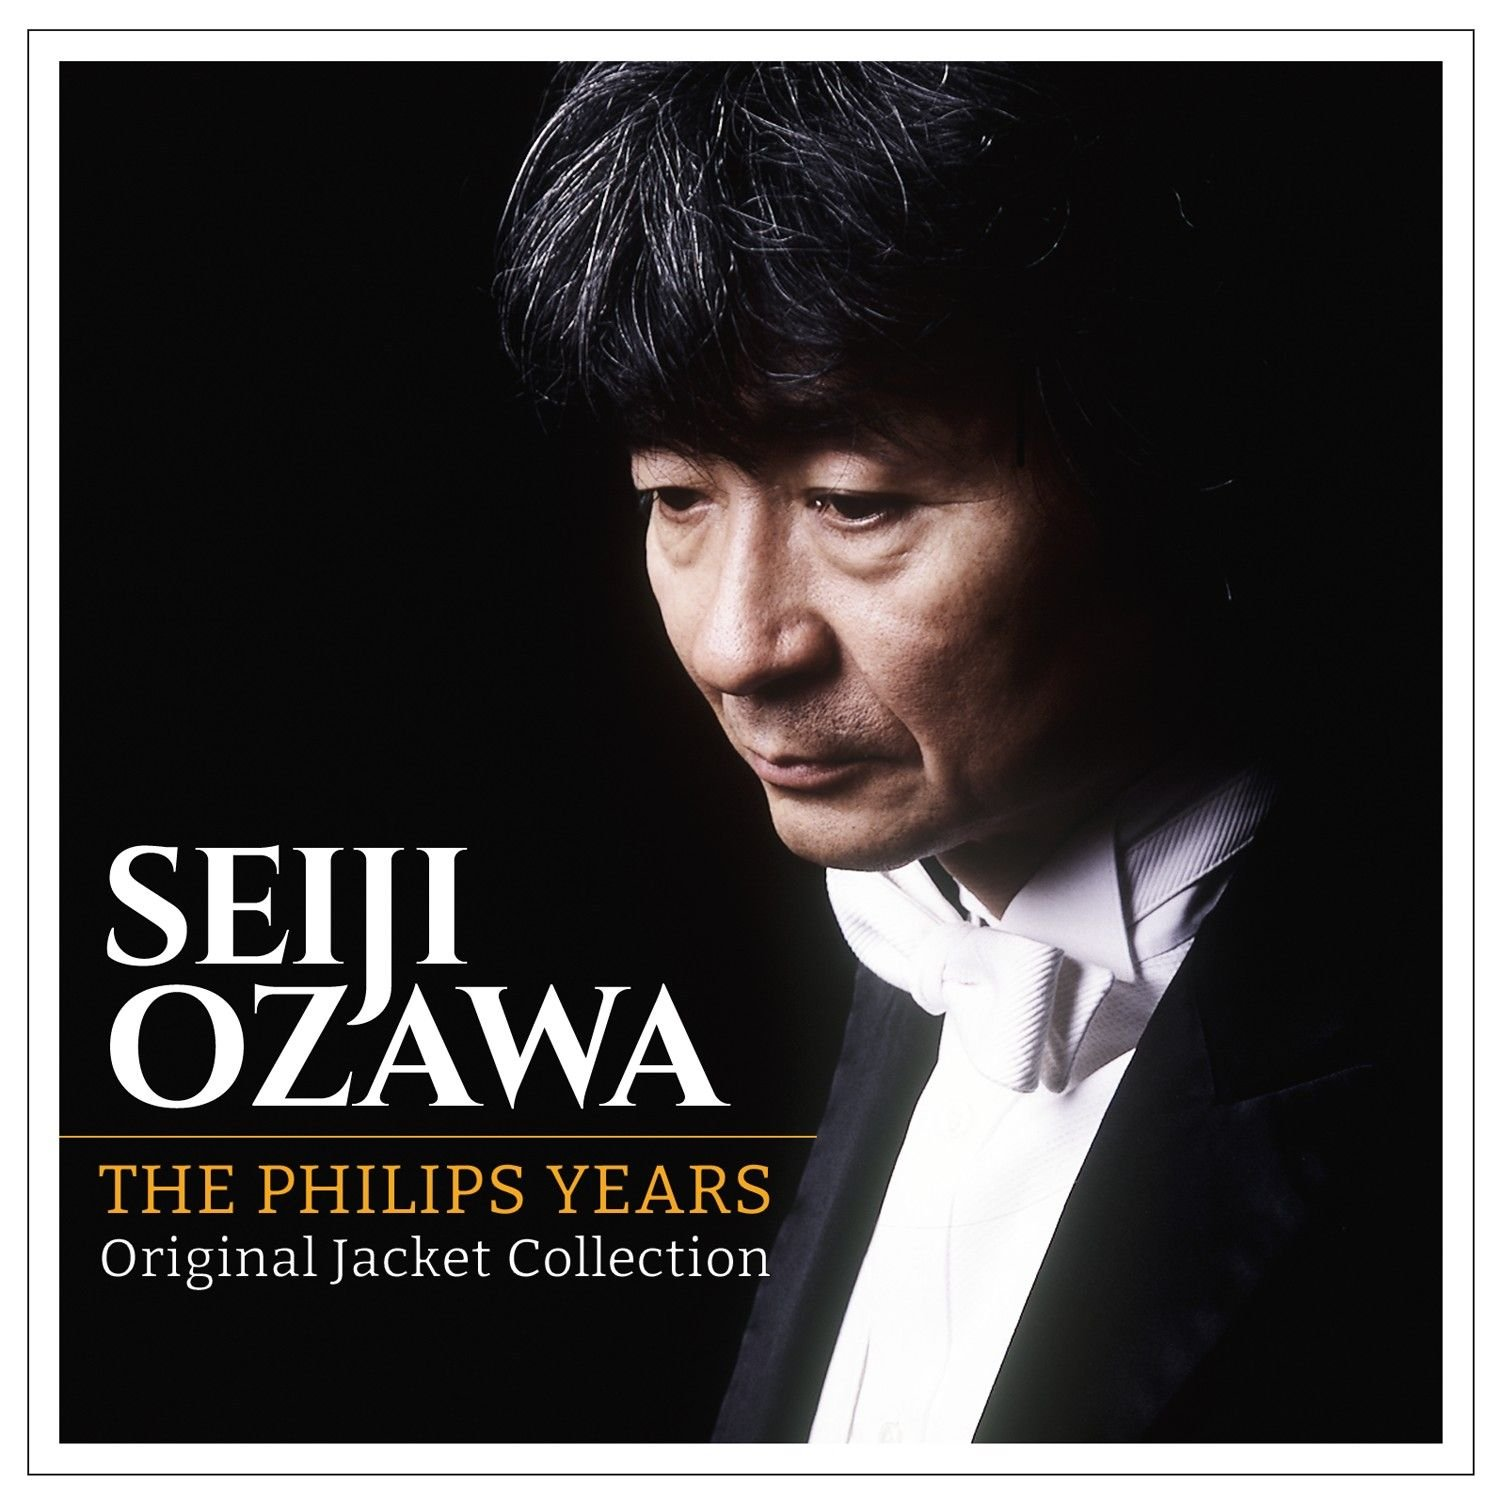 Seiji Ozawa - The Philips Years [50 CD] by Decca (Image #1)